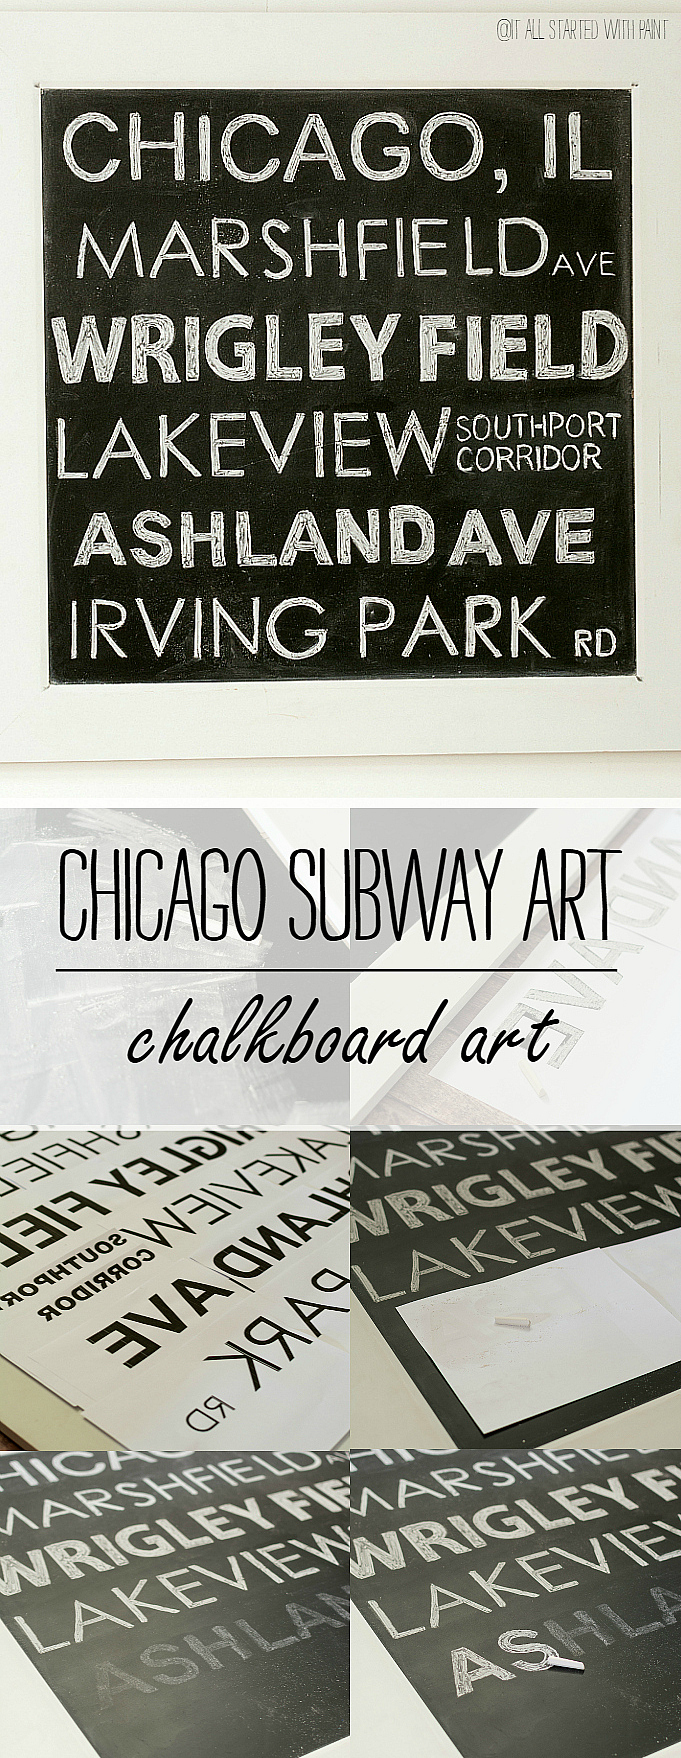 Chicago Subway Art Chalkboard Art